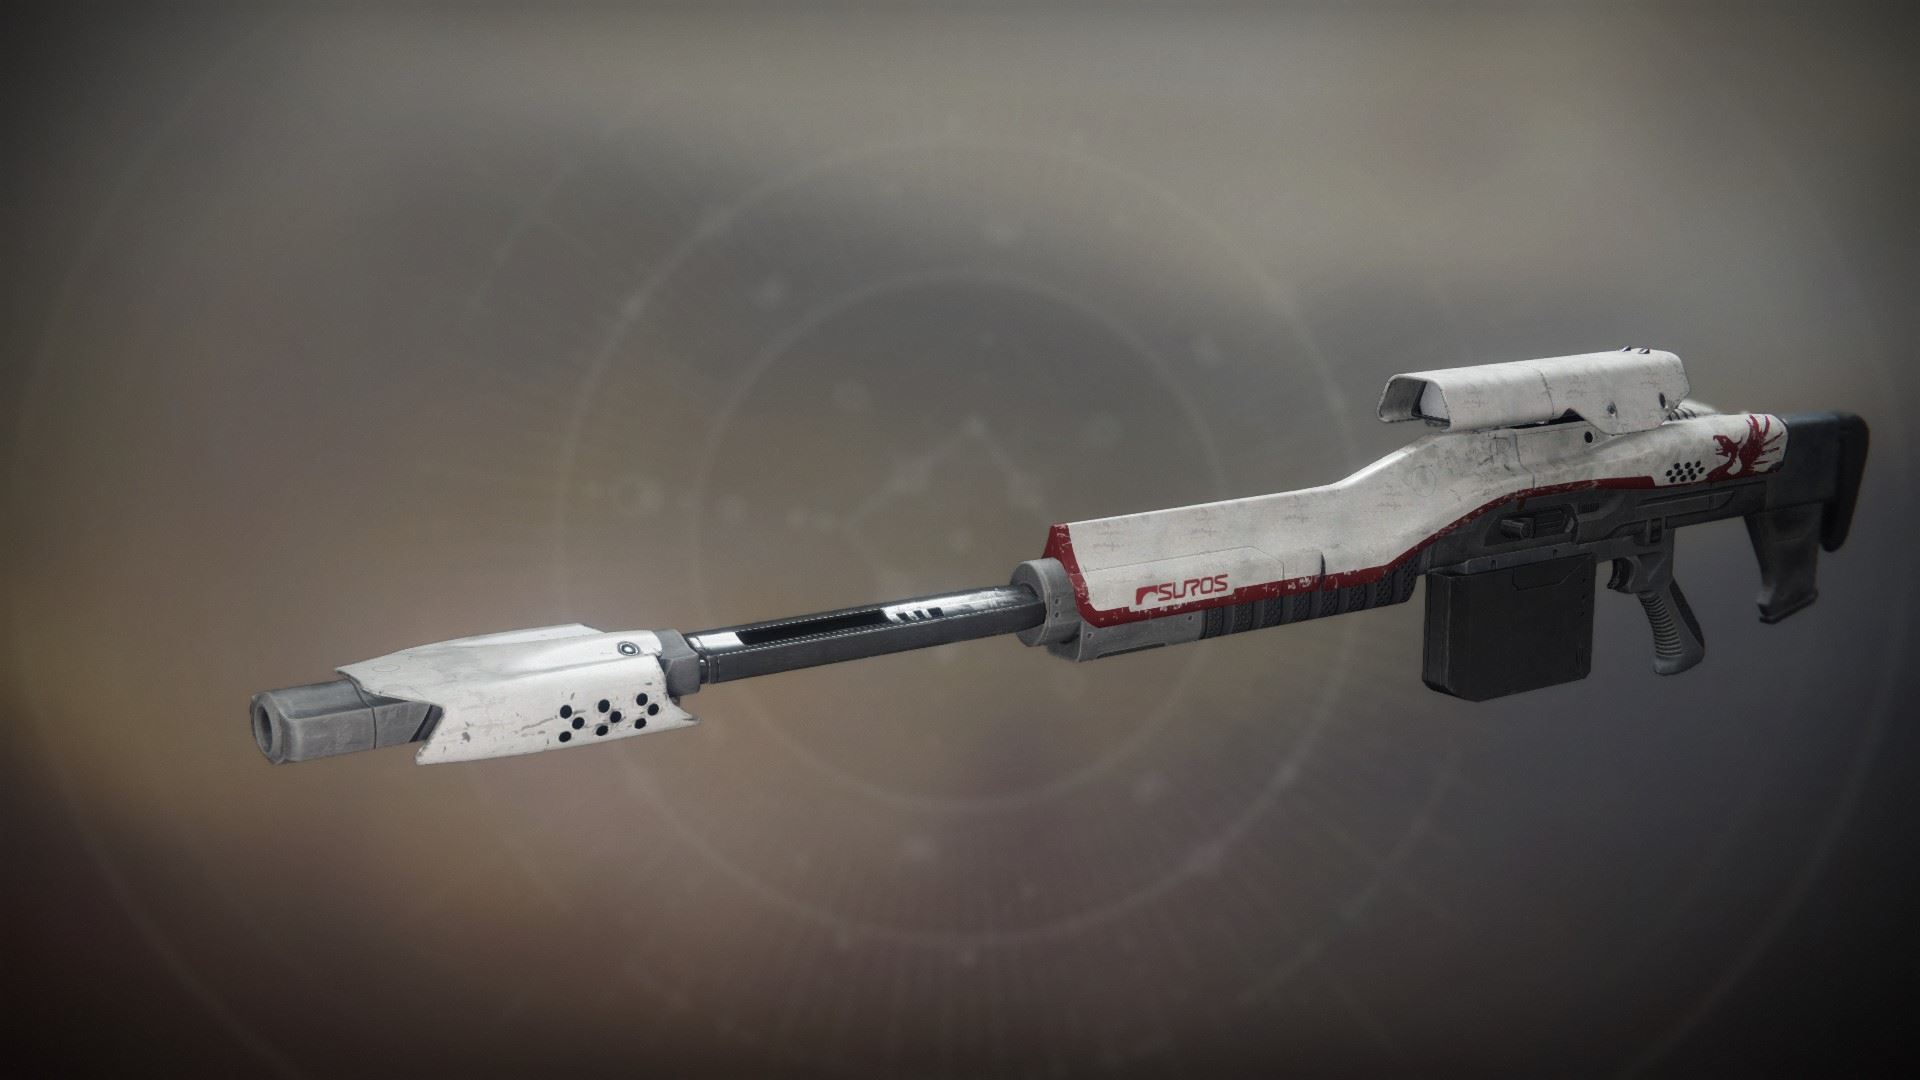 An in-game render of the Elegy-49.